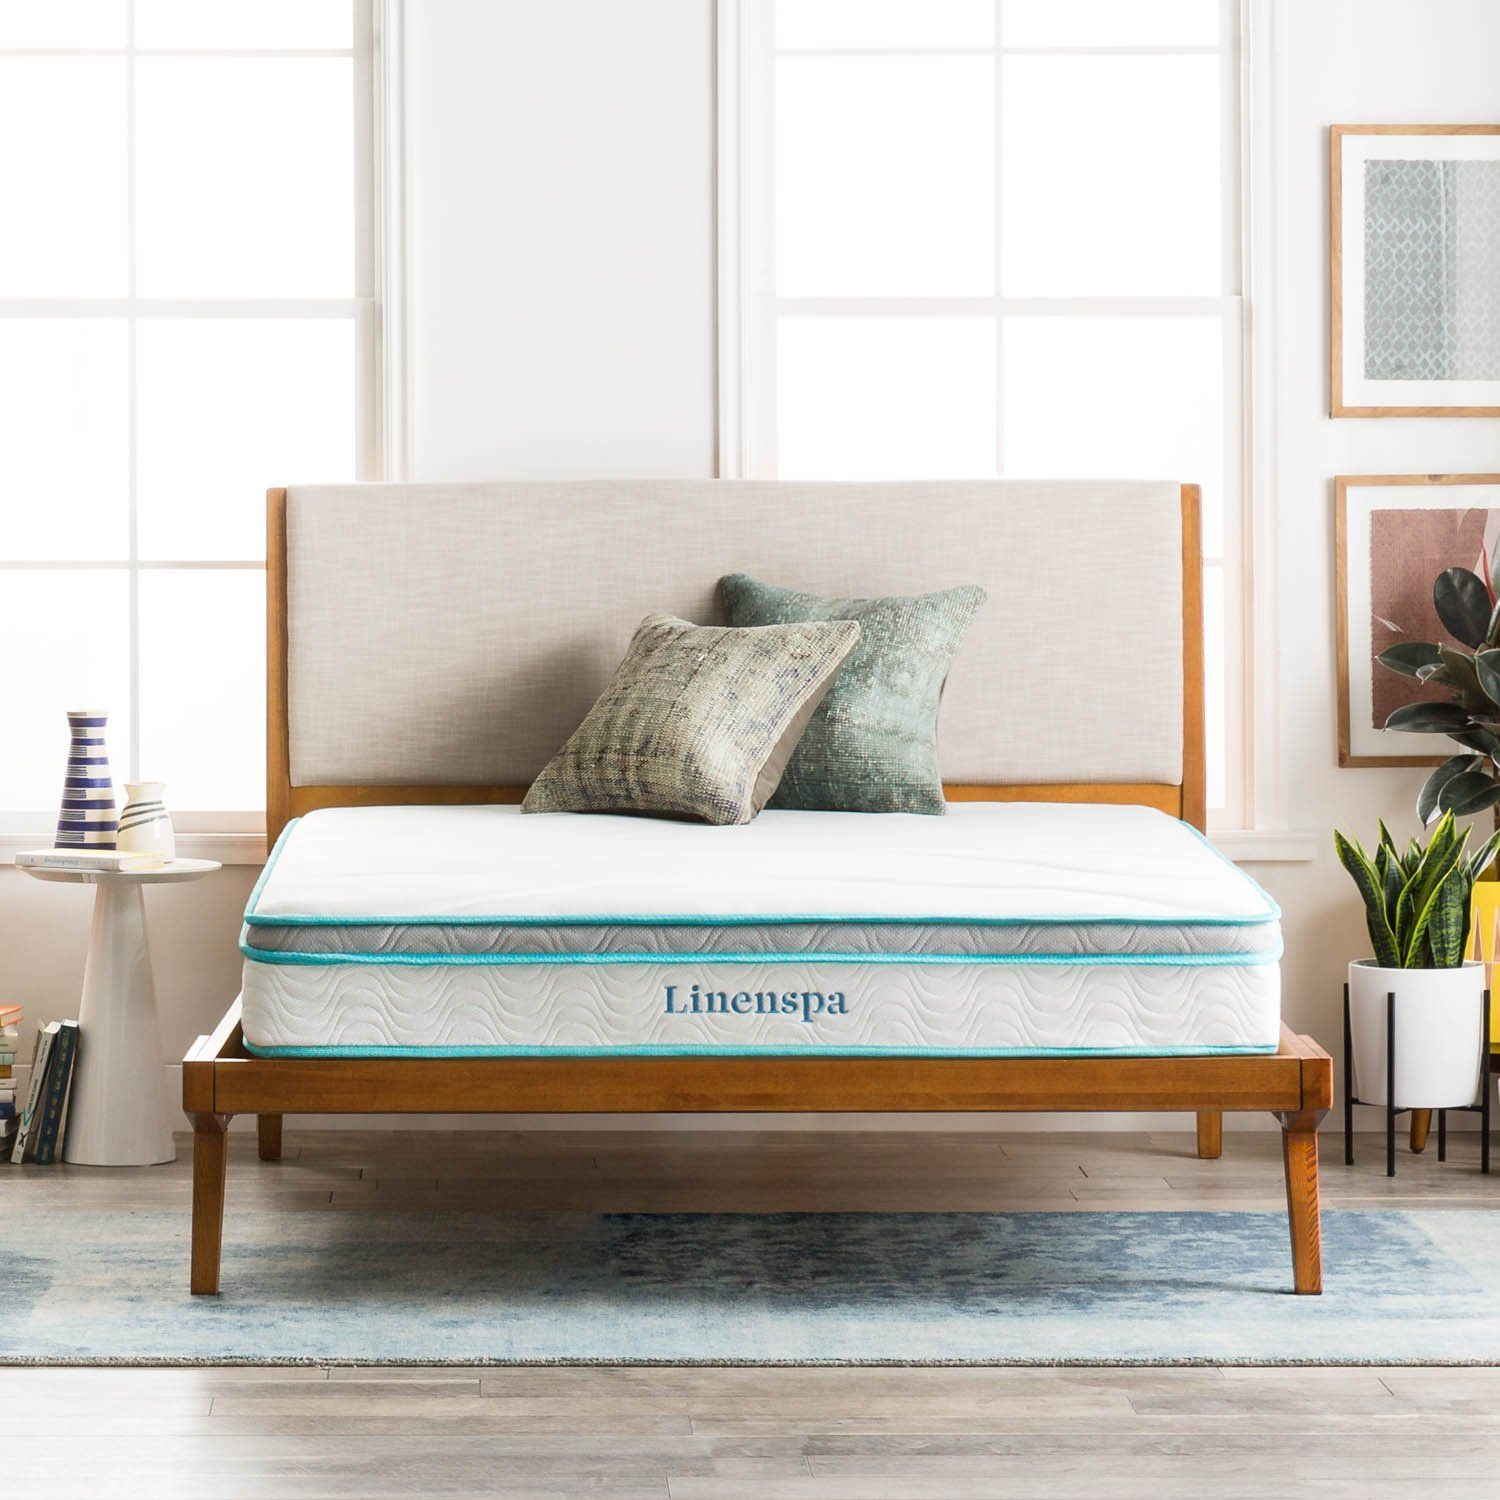 Amazons Best-Selling Mattress Is Only 95 and People Are Obsessed